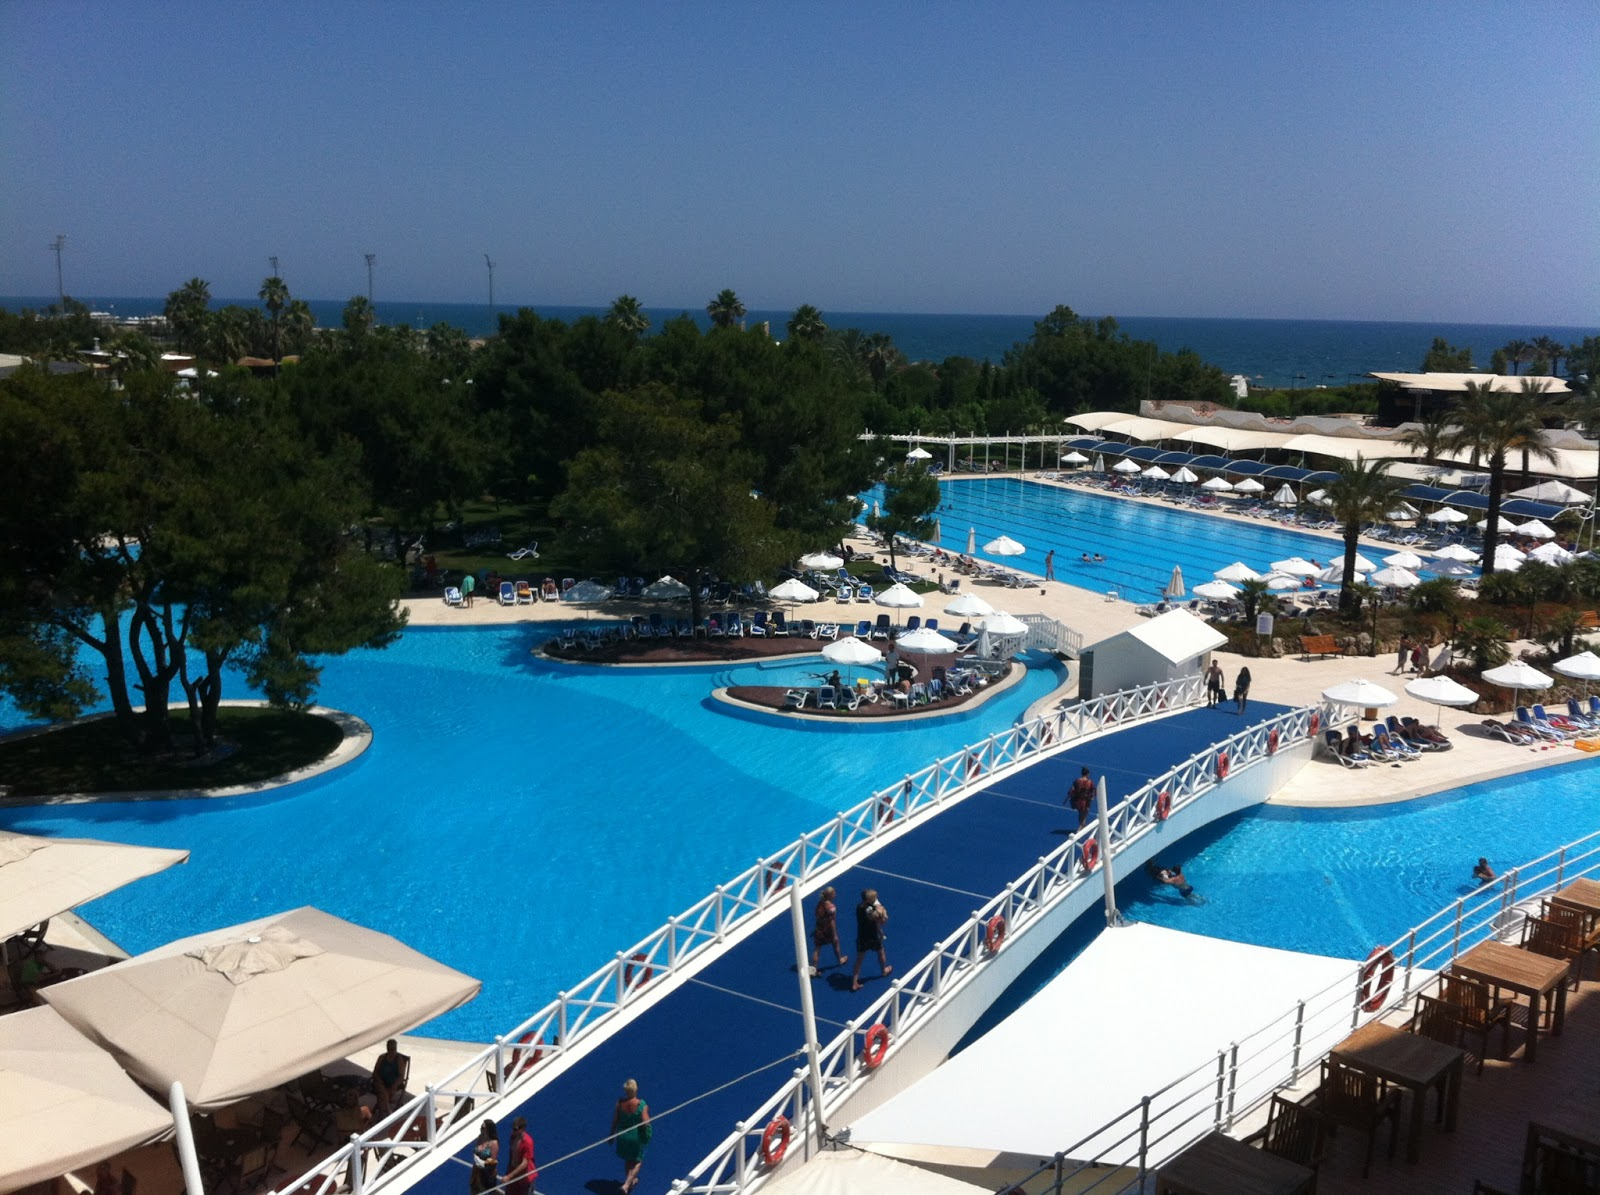 Hotel Crystal Palace Luxury Resort And Spa Turkische Riviera